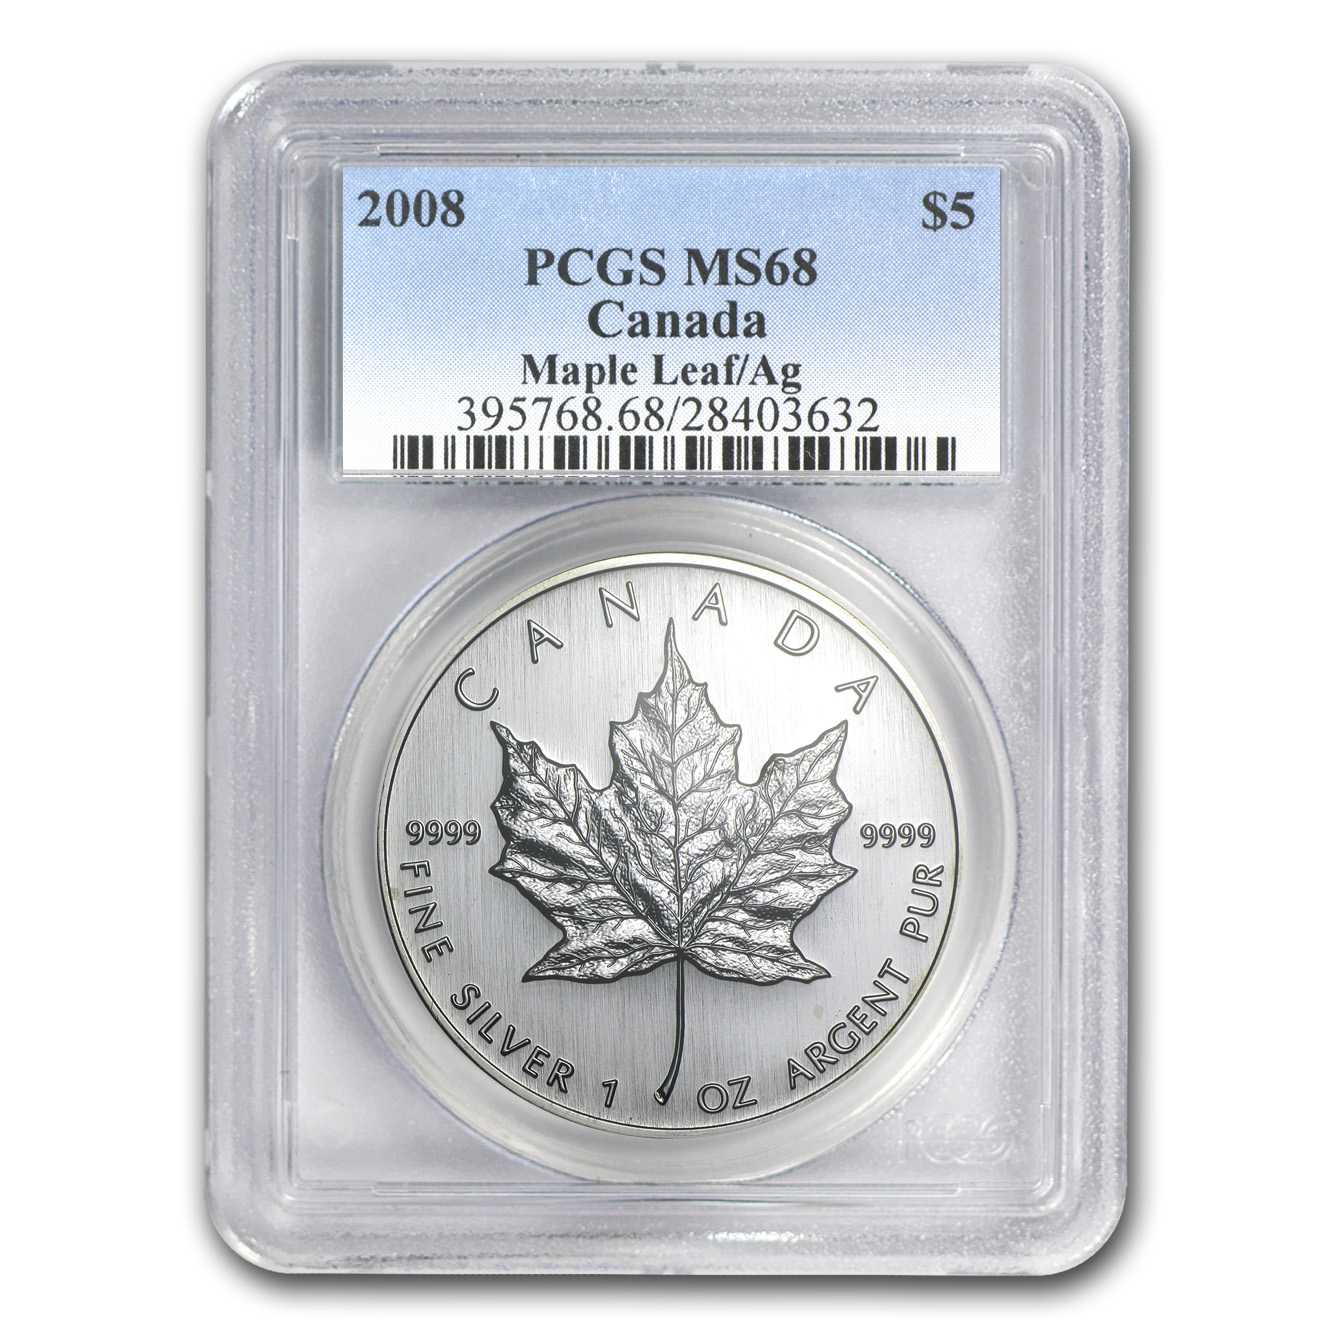 2008 Canada 1 oz Silver Maple Leaf MS-68 PCGS